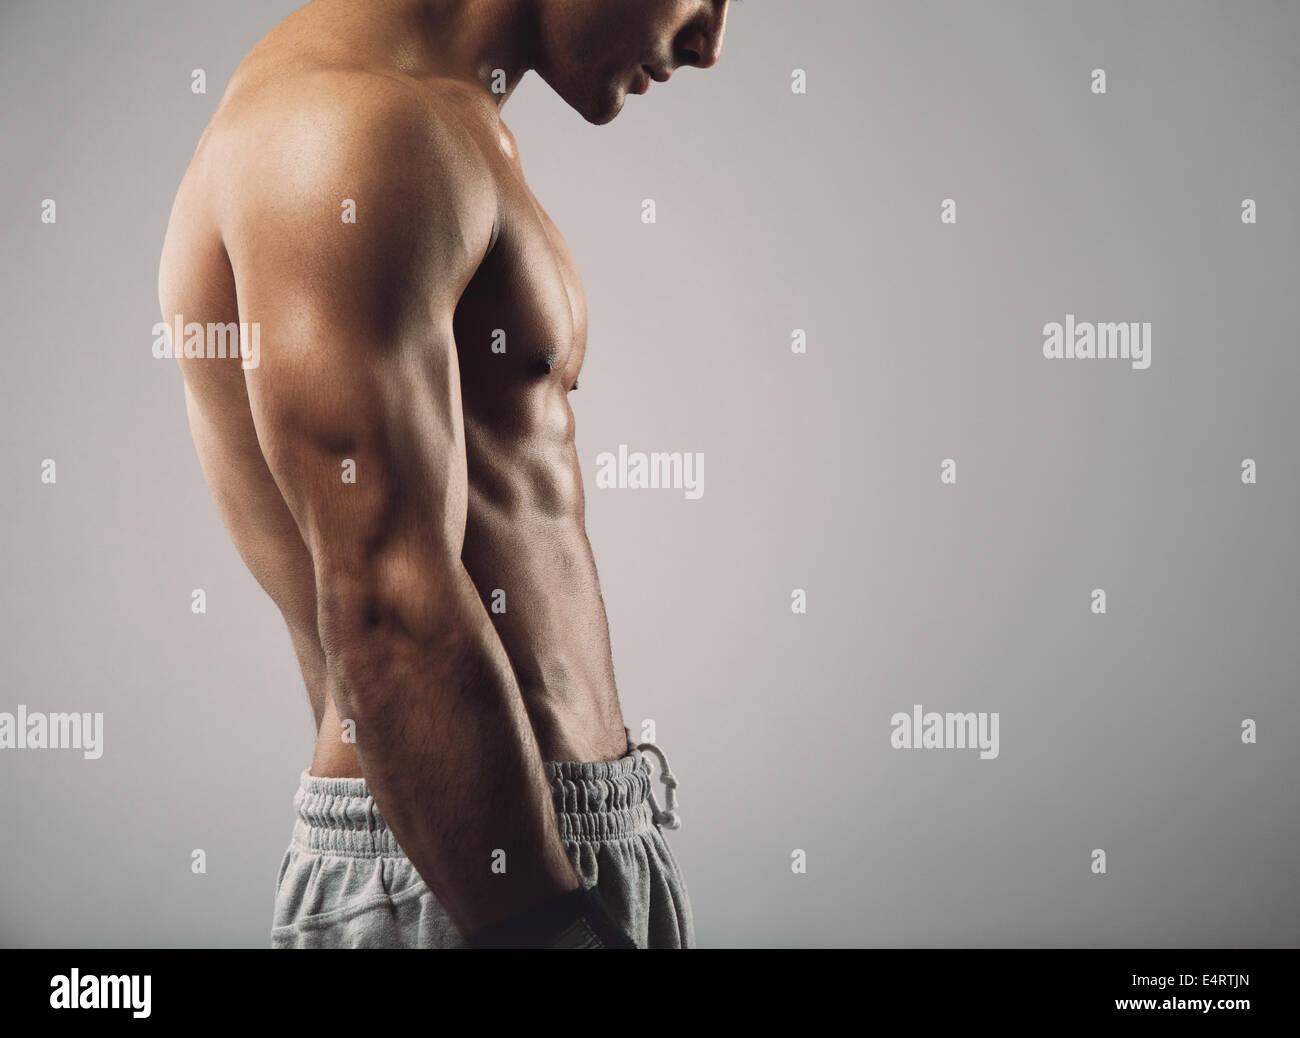 Cropped image of muscular young man torso on grey background with copy space. - Stock Image